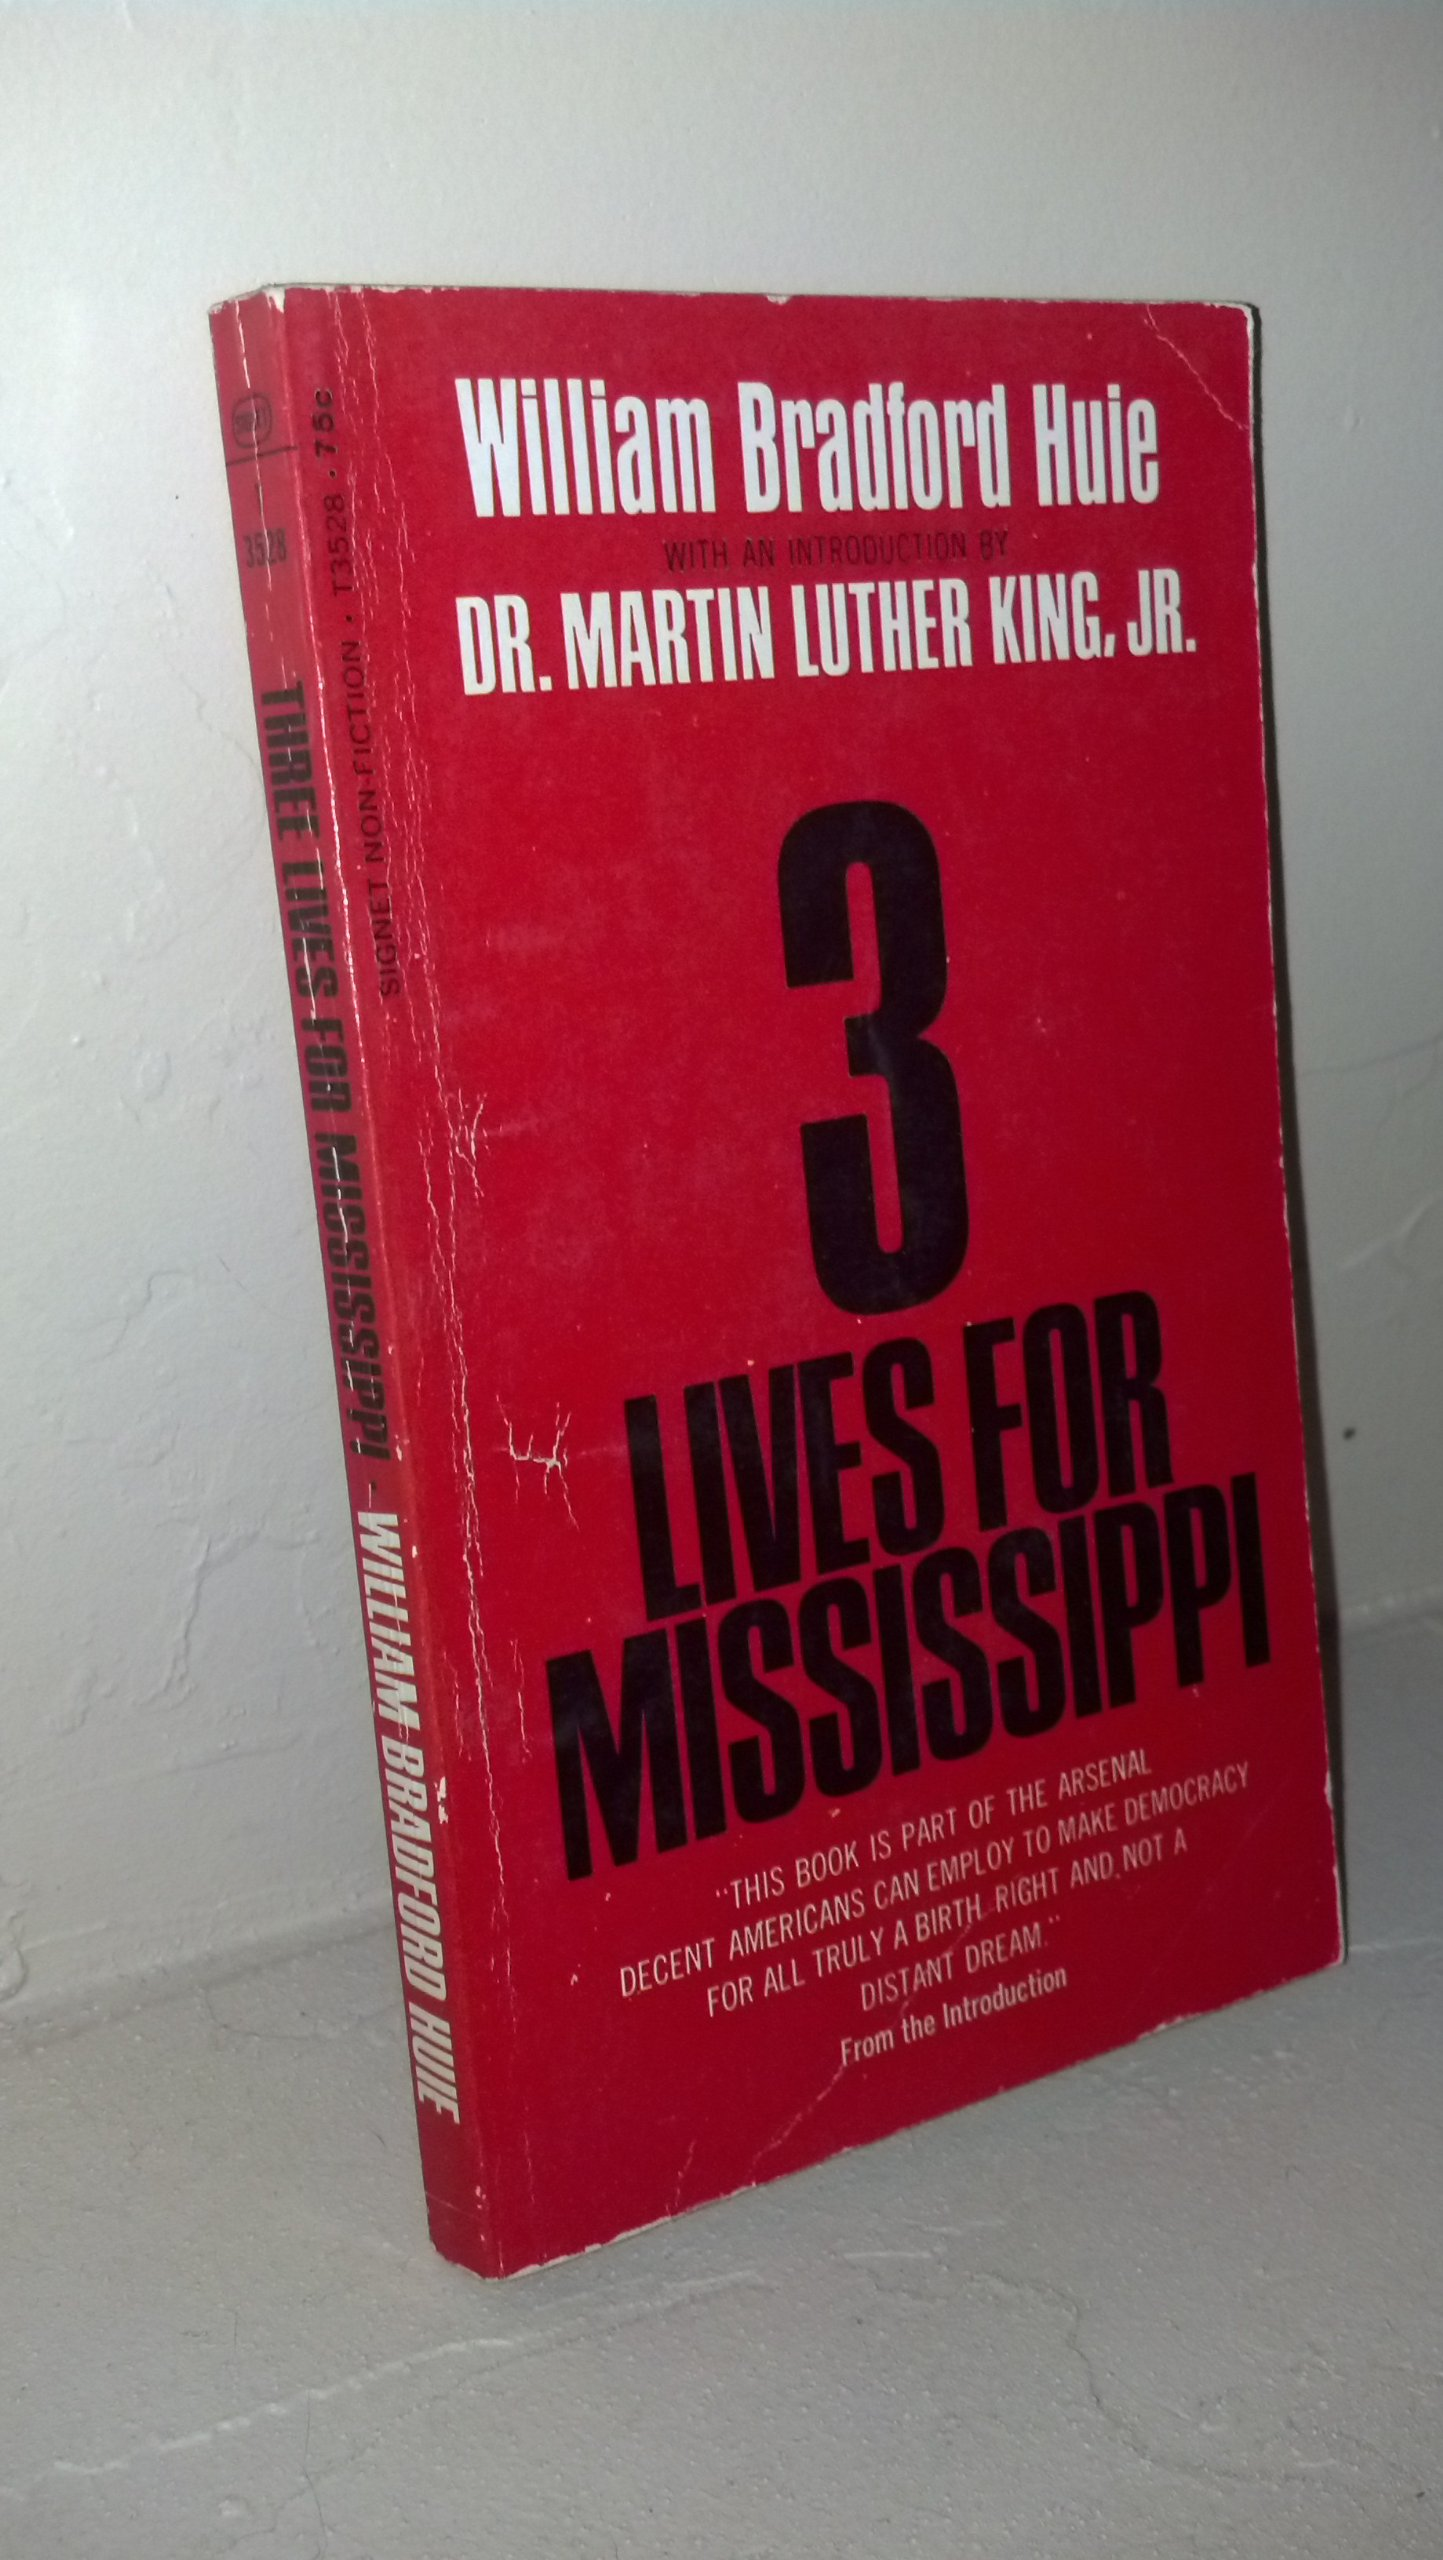 3 Lives for Mississippi, Huie, William Bradford